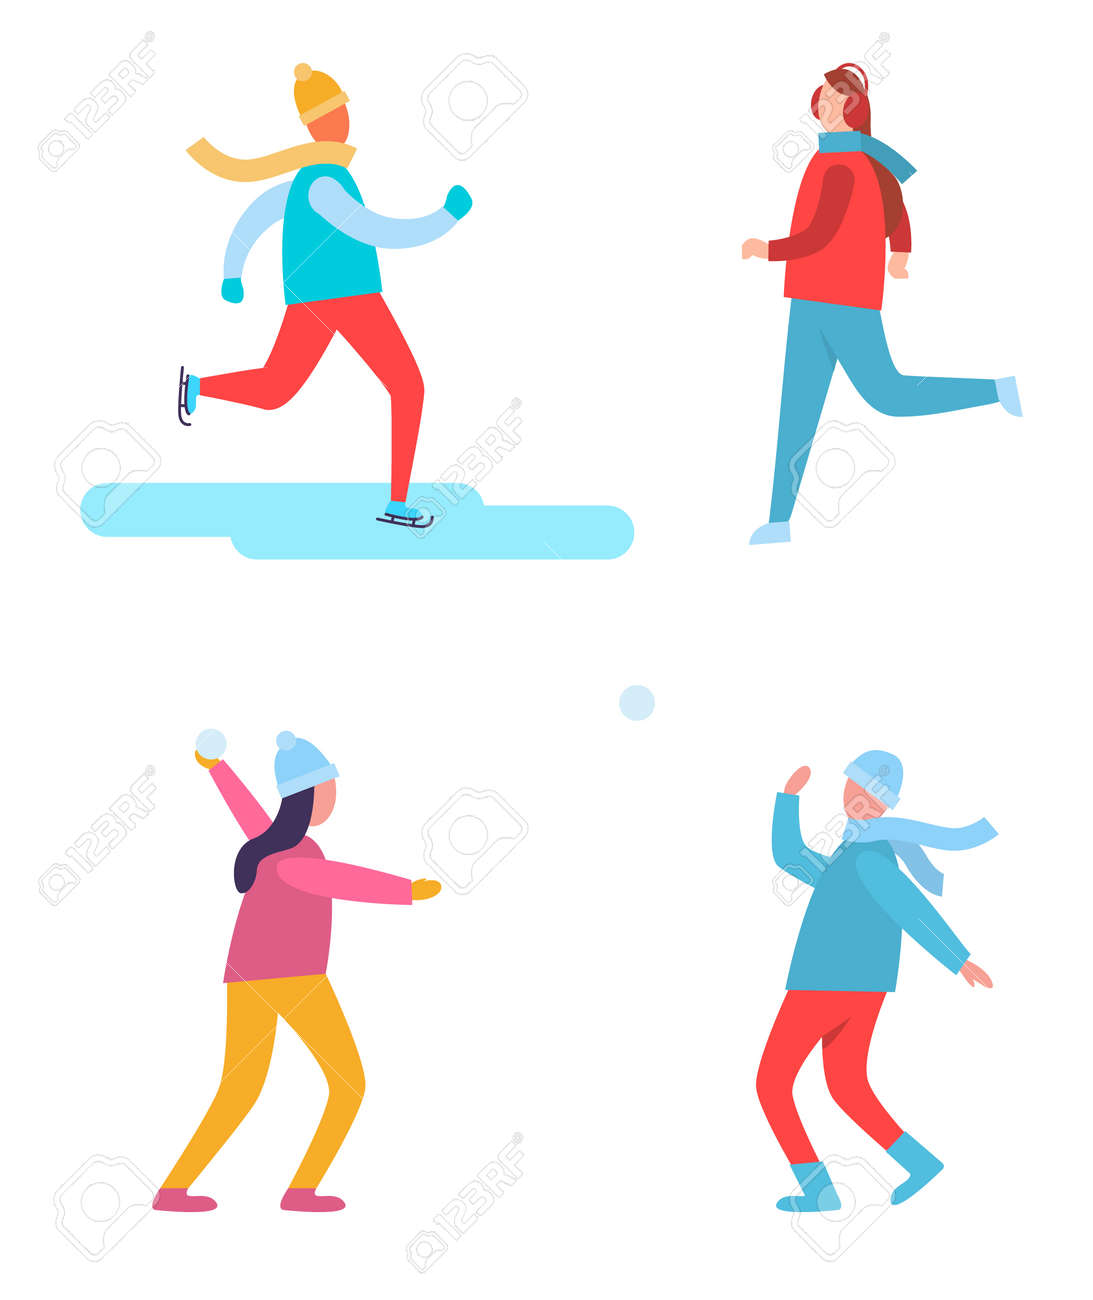 18e95e3c53 ... together vector illustration. Peoples winter activities